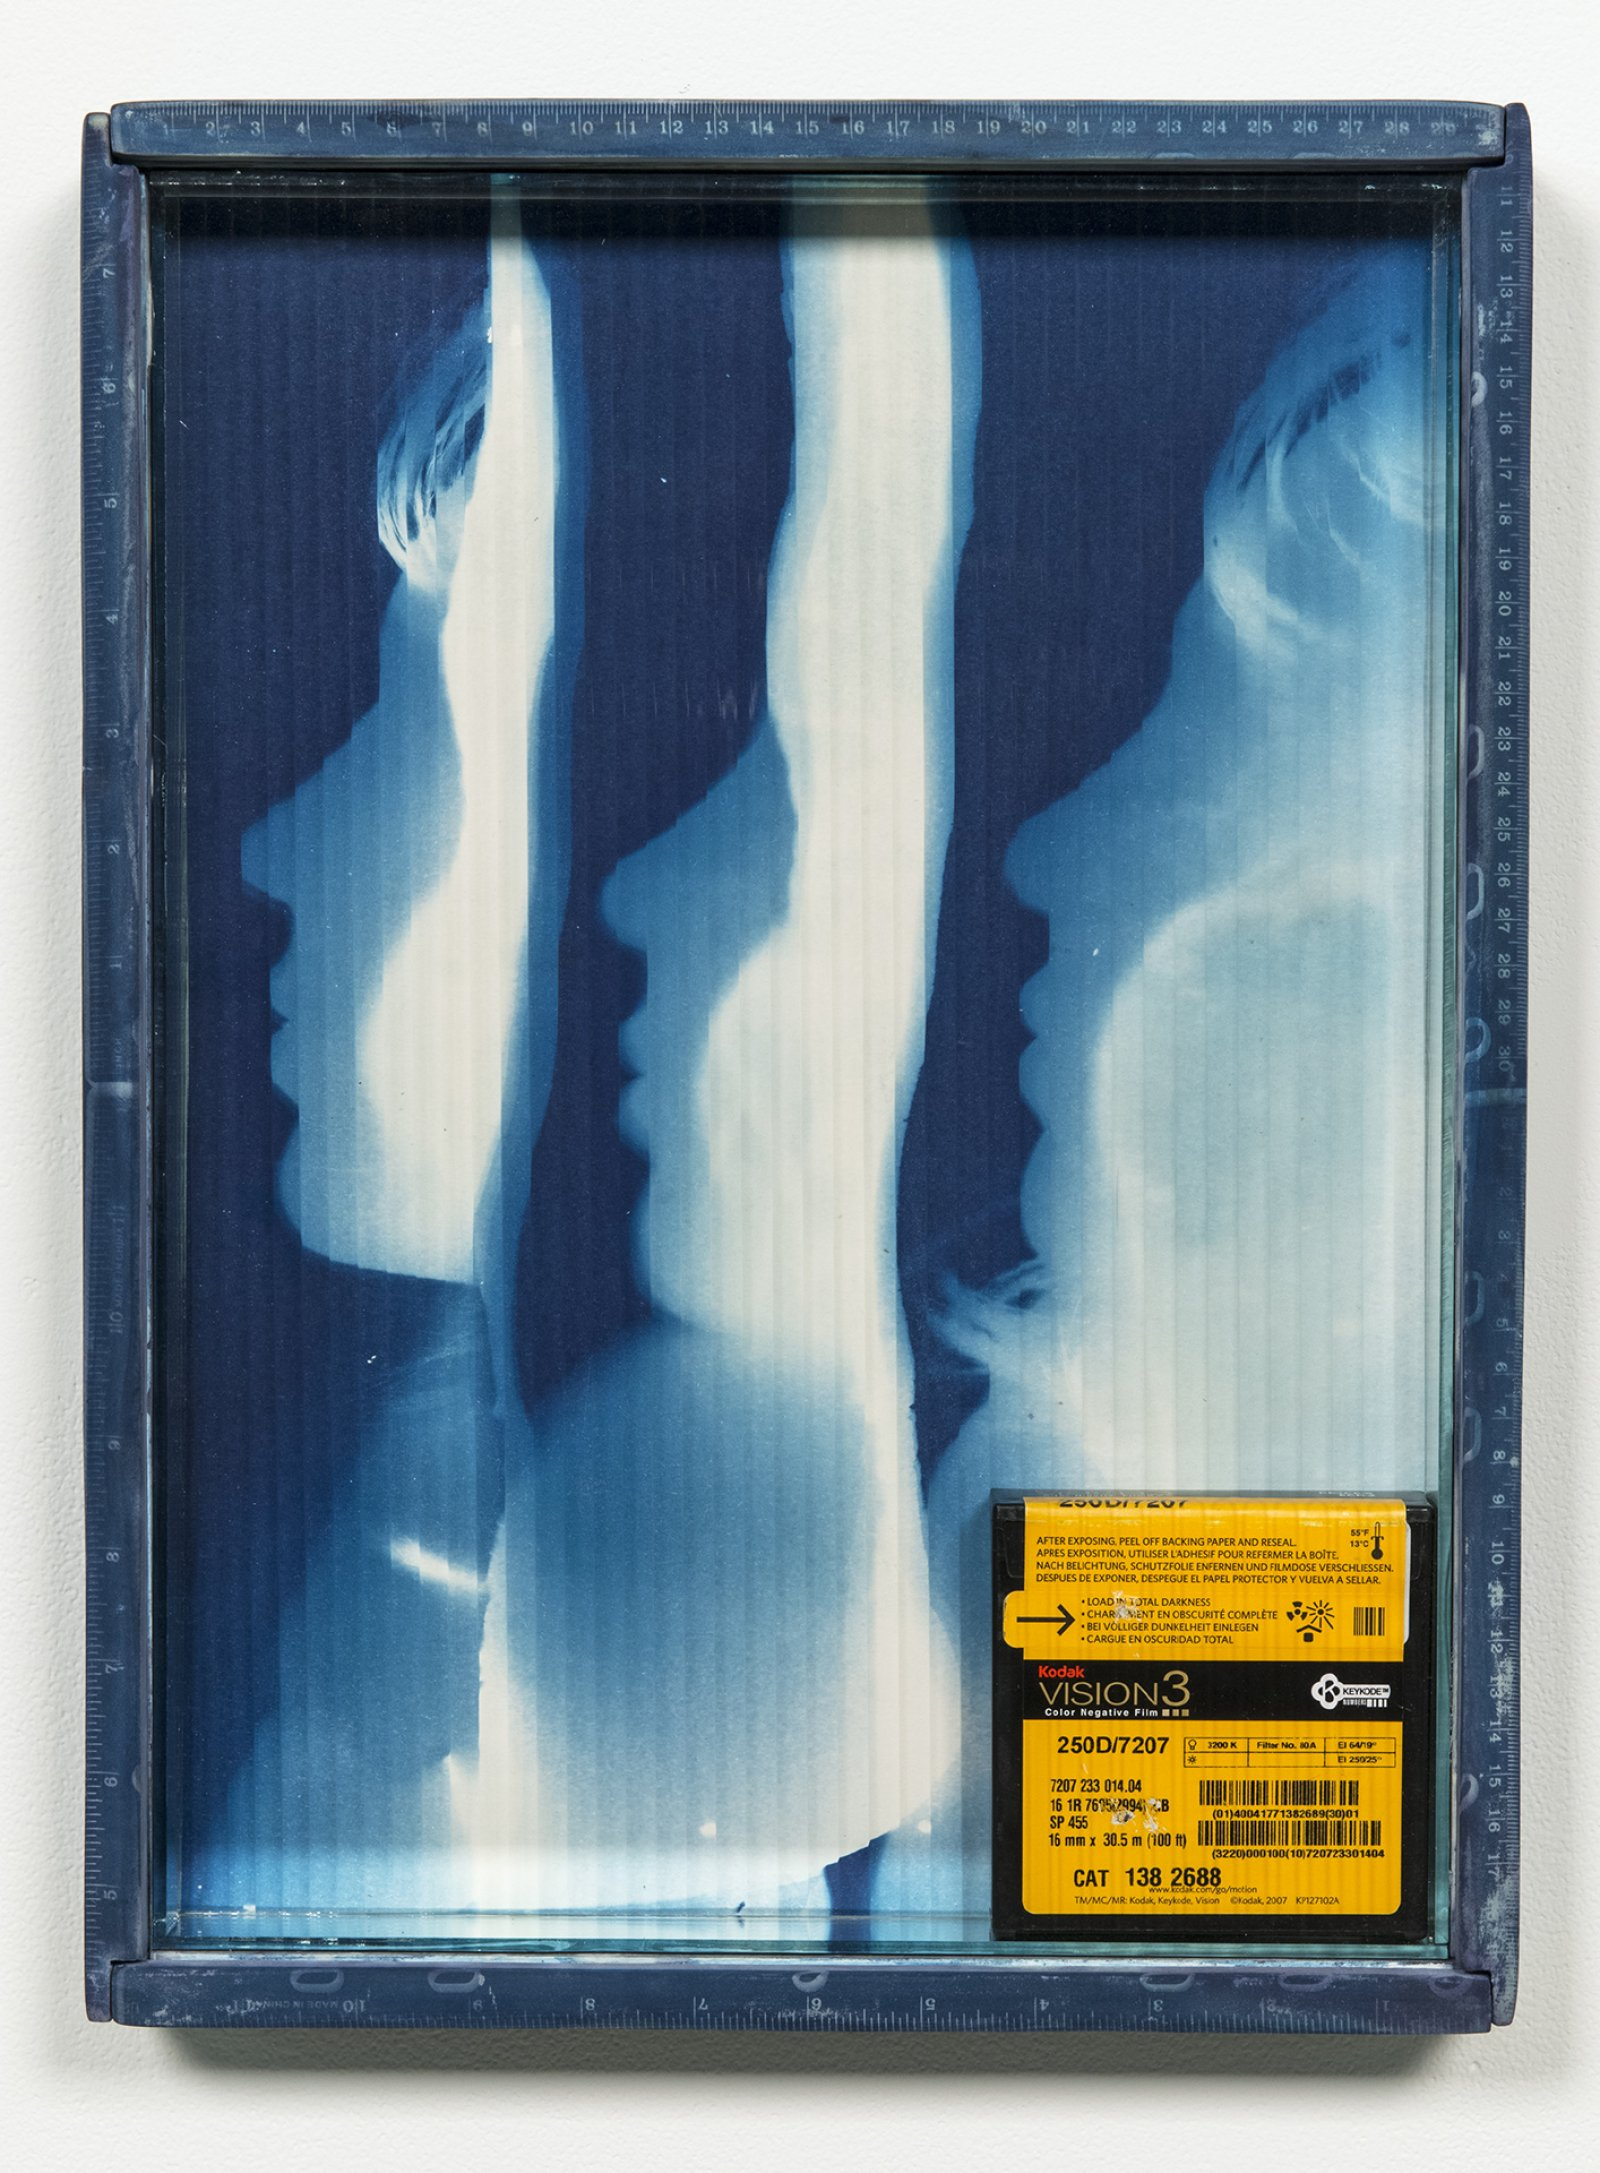 Julia Feyrer, Vision3, 2012, cyanotype treated pine wood frame, cyanotype on watercolour paper, mirror inset, quarter reed architectural glass, 16mm vision3 kodak 100ft film canister, 17 x 13 in. (43 x 32 cm)